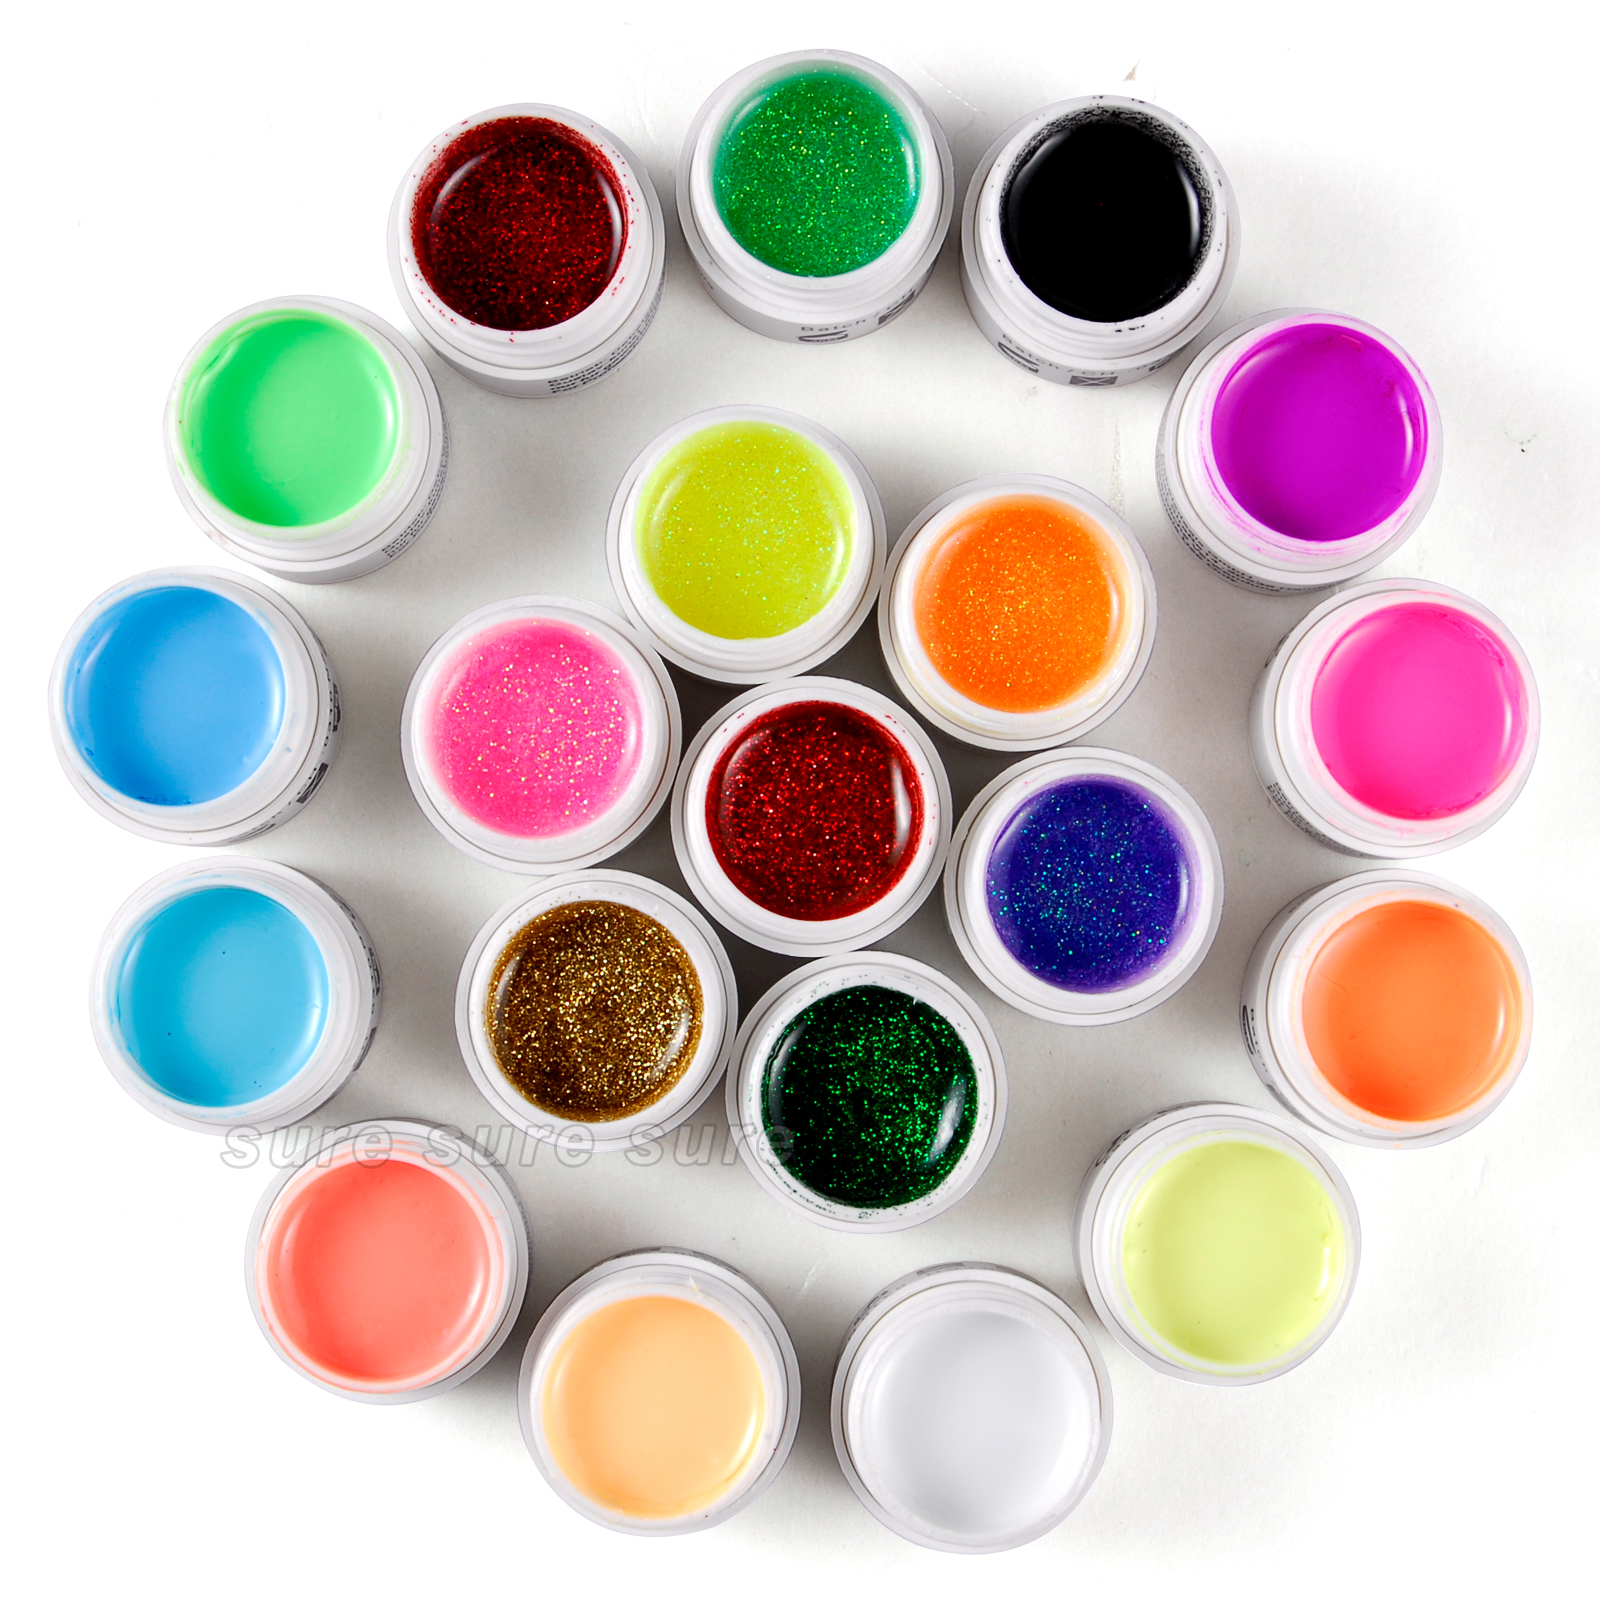 Lot 20 pot gel uv ongles faux milkshake paillette 16x - Peinture violet paillete ...